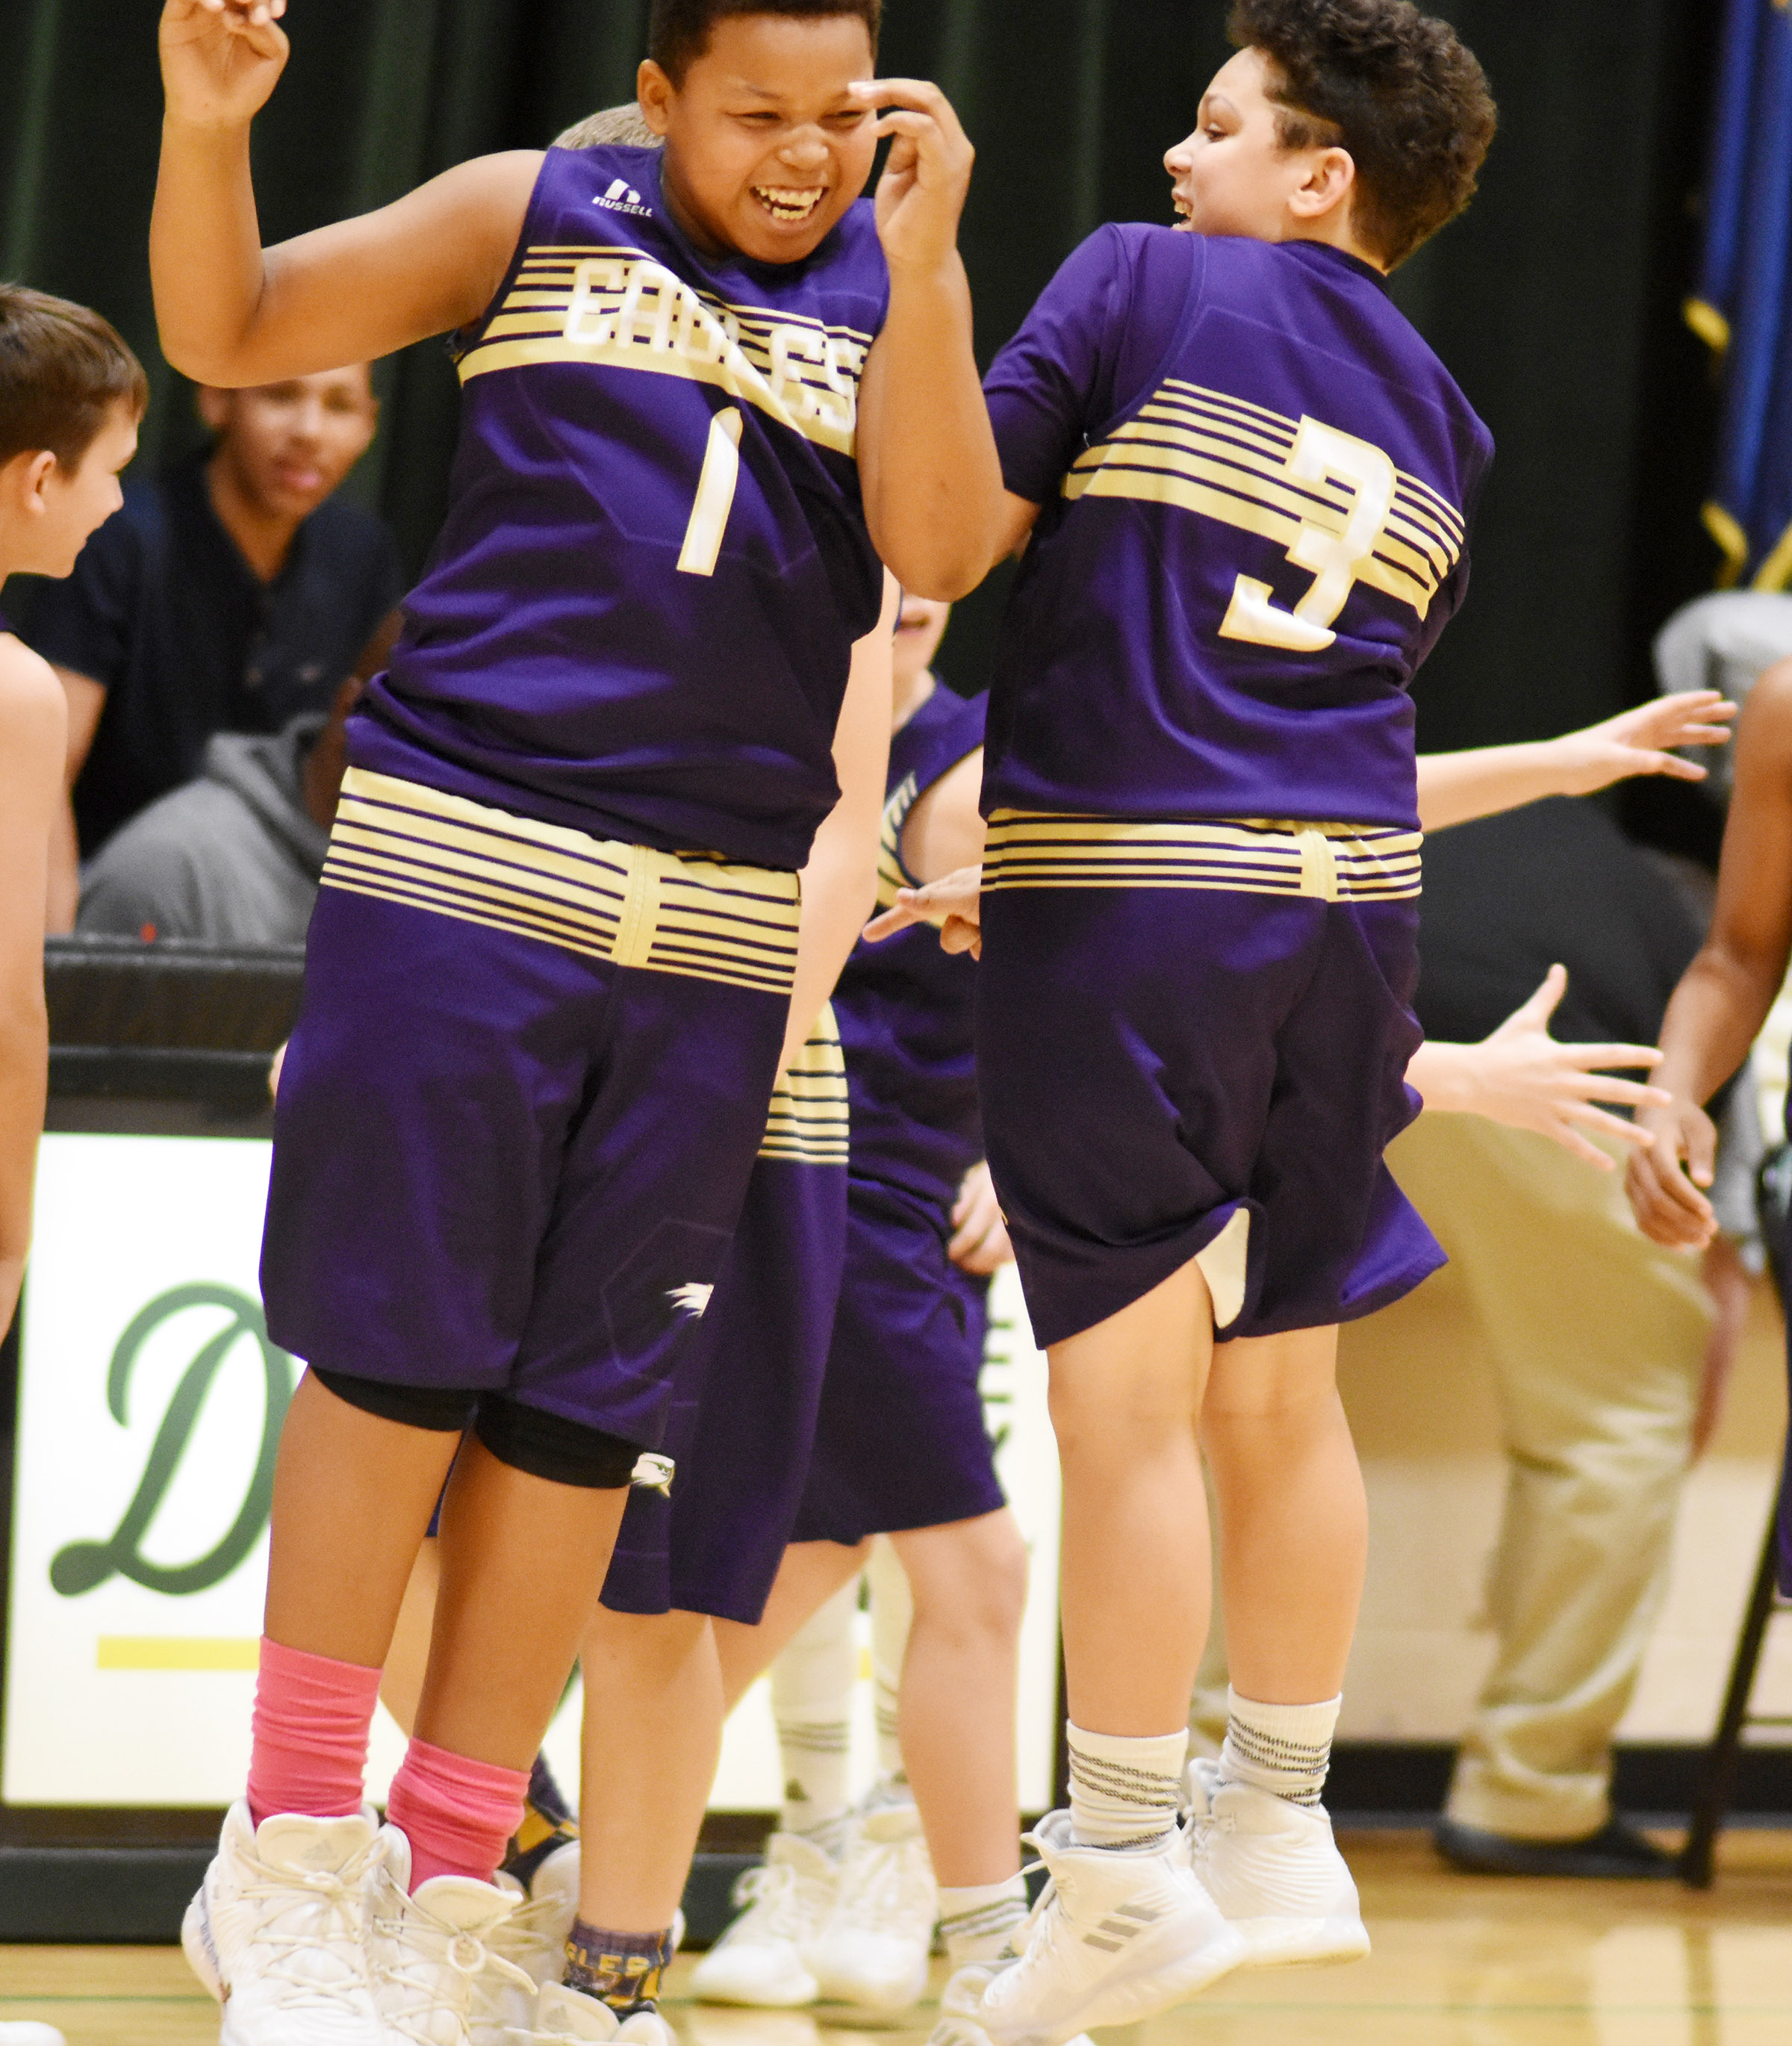 CMS seventh-graders Keondre Weathers, at left, and Kaydon Taylor celebrate as their game goes into overtime.